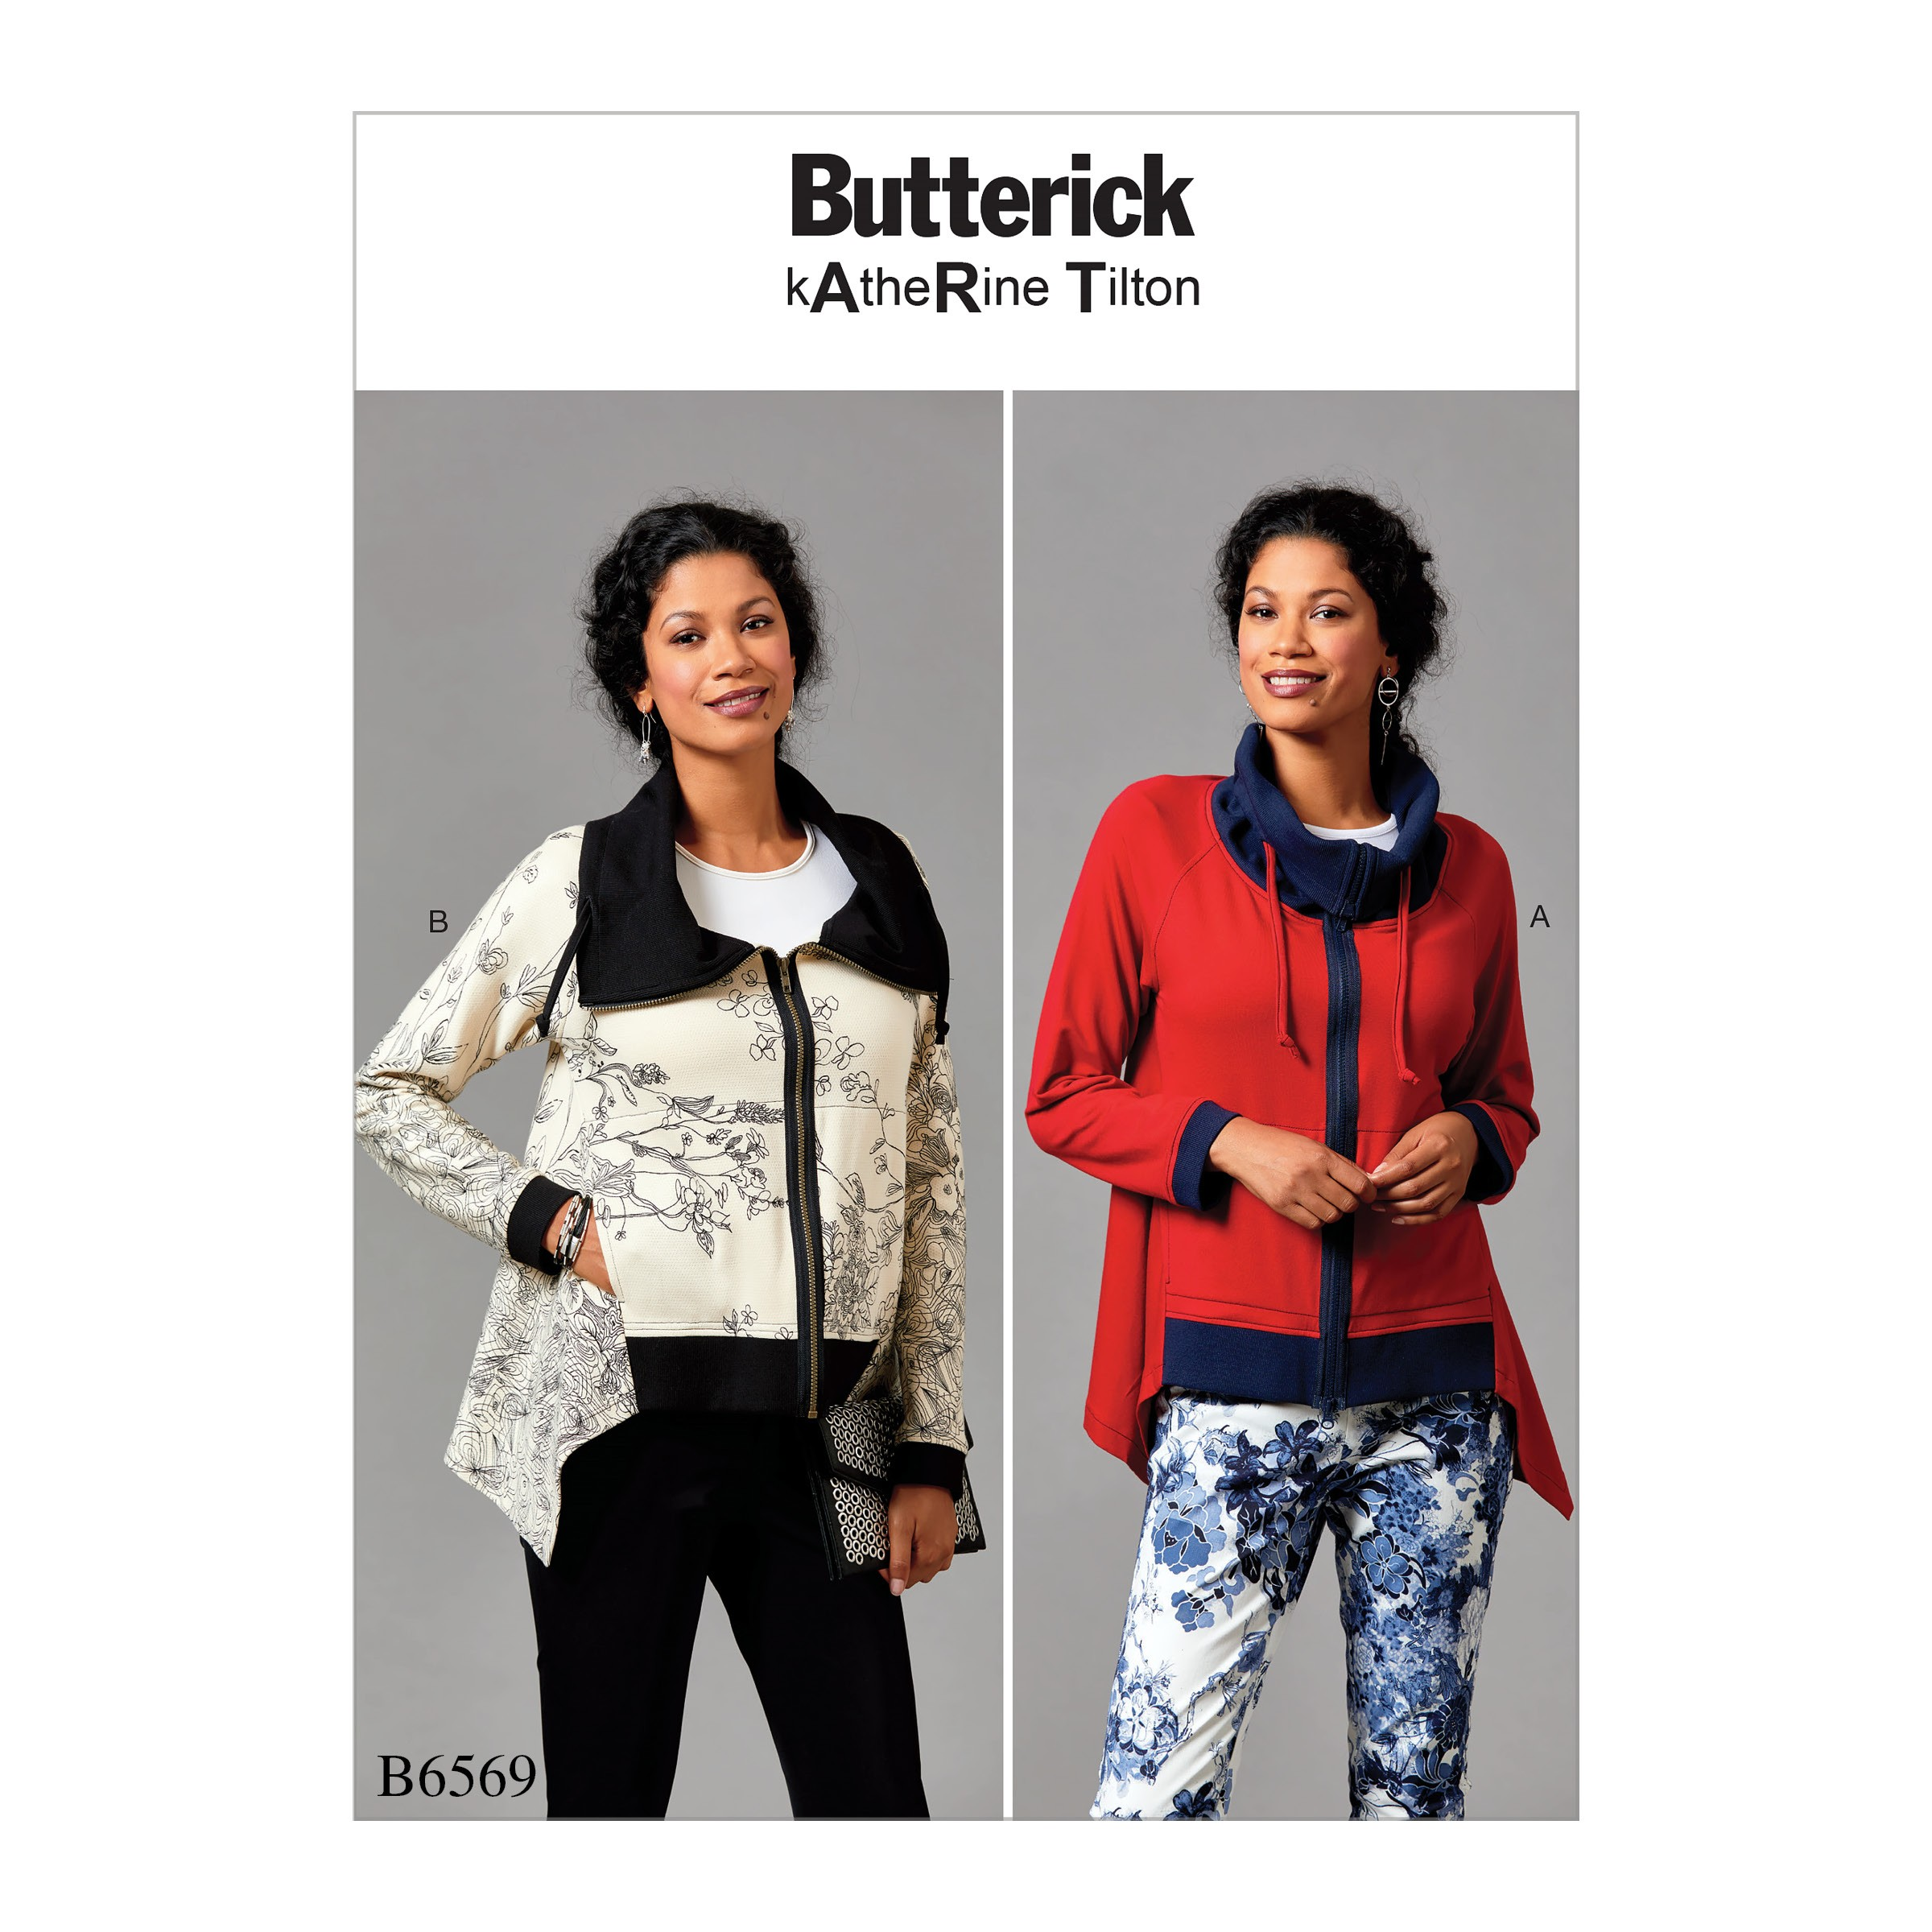 Butterick Sewing Pattern 6569 Misses' Loose Fitting Jacket With Drawstrings